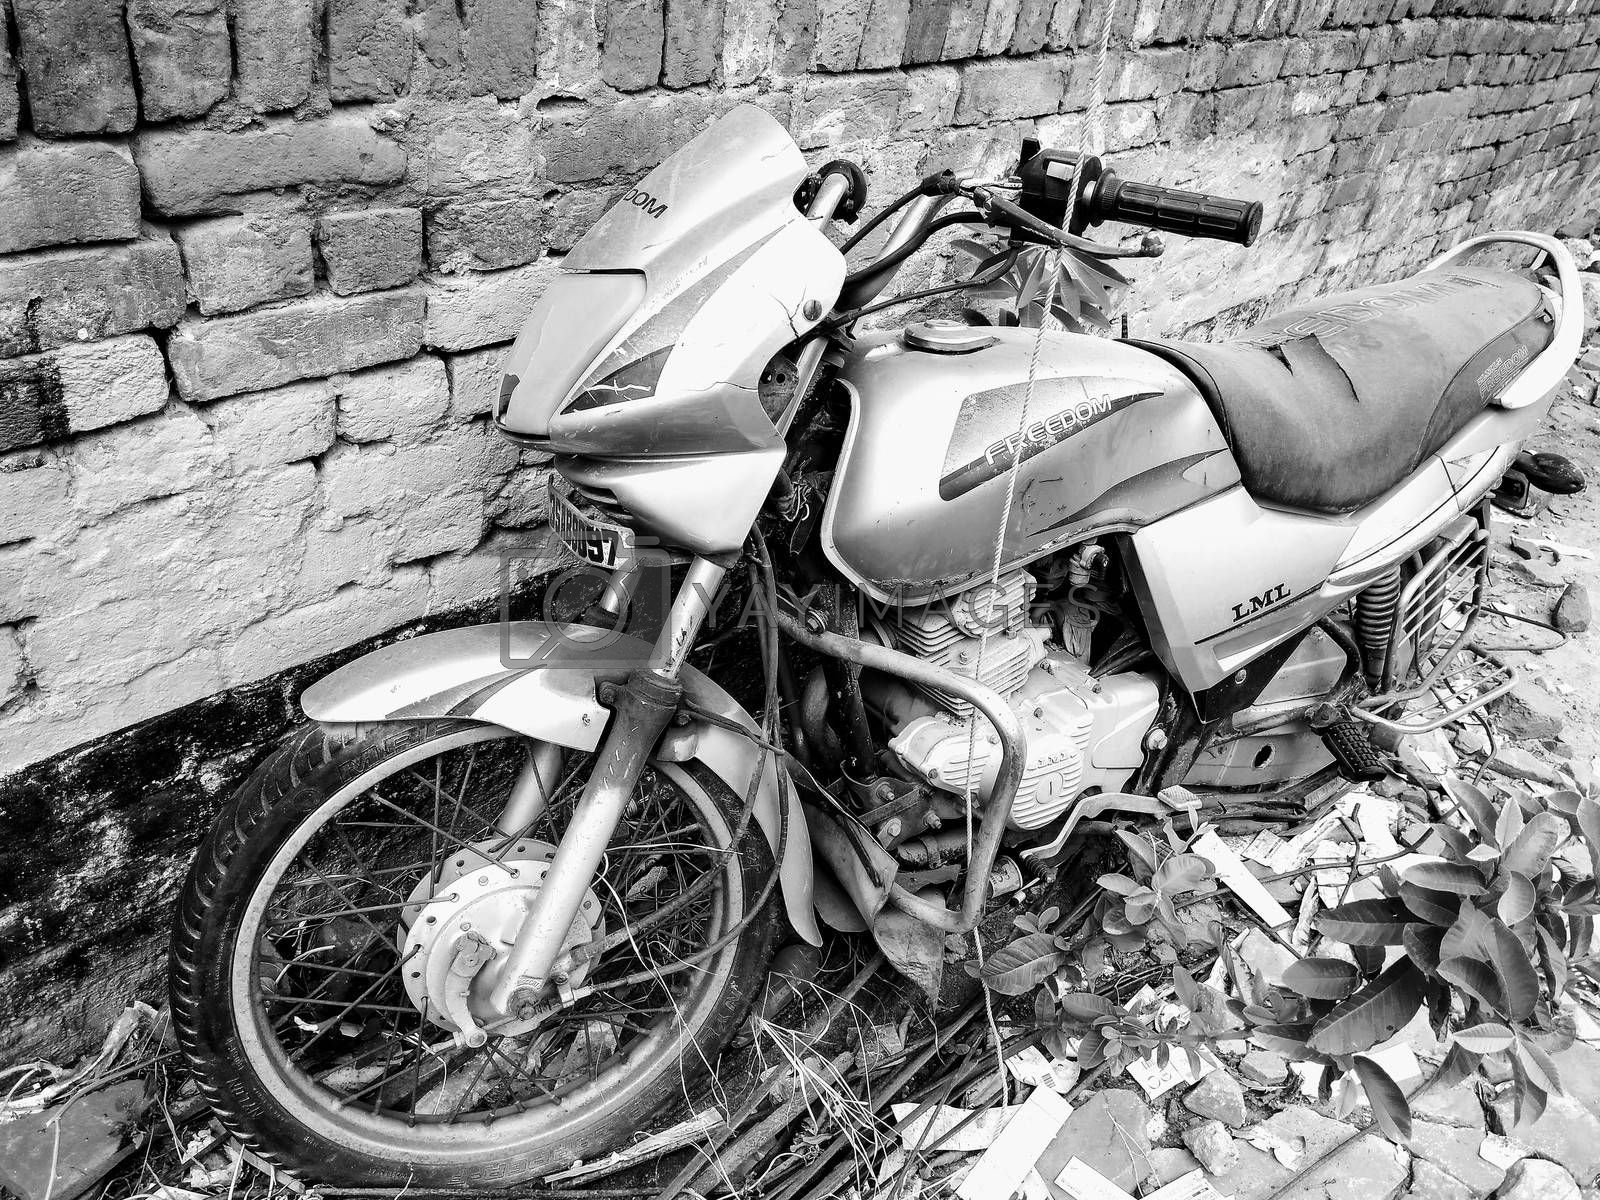 A picture of motorbike